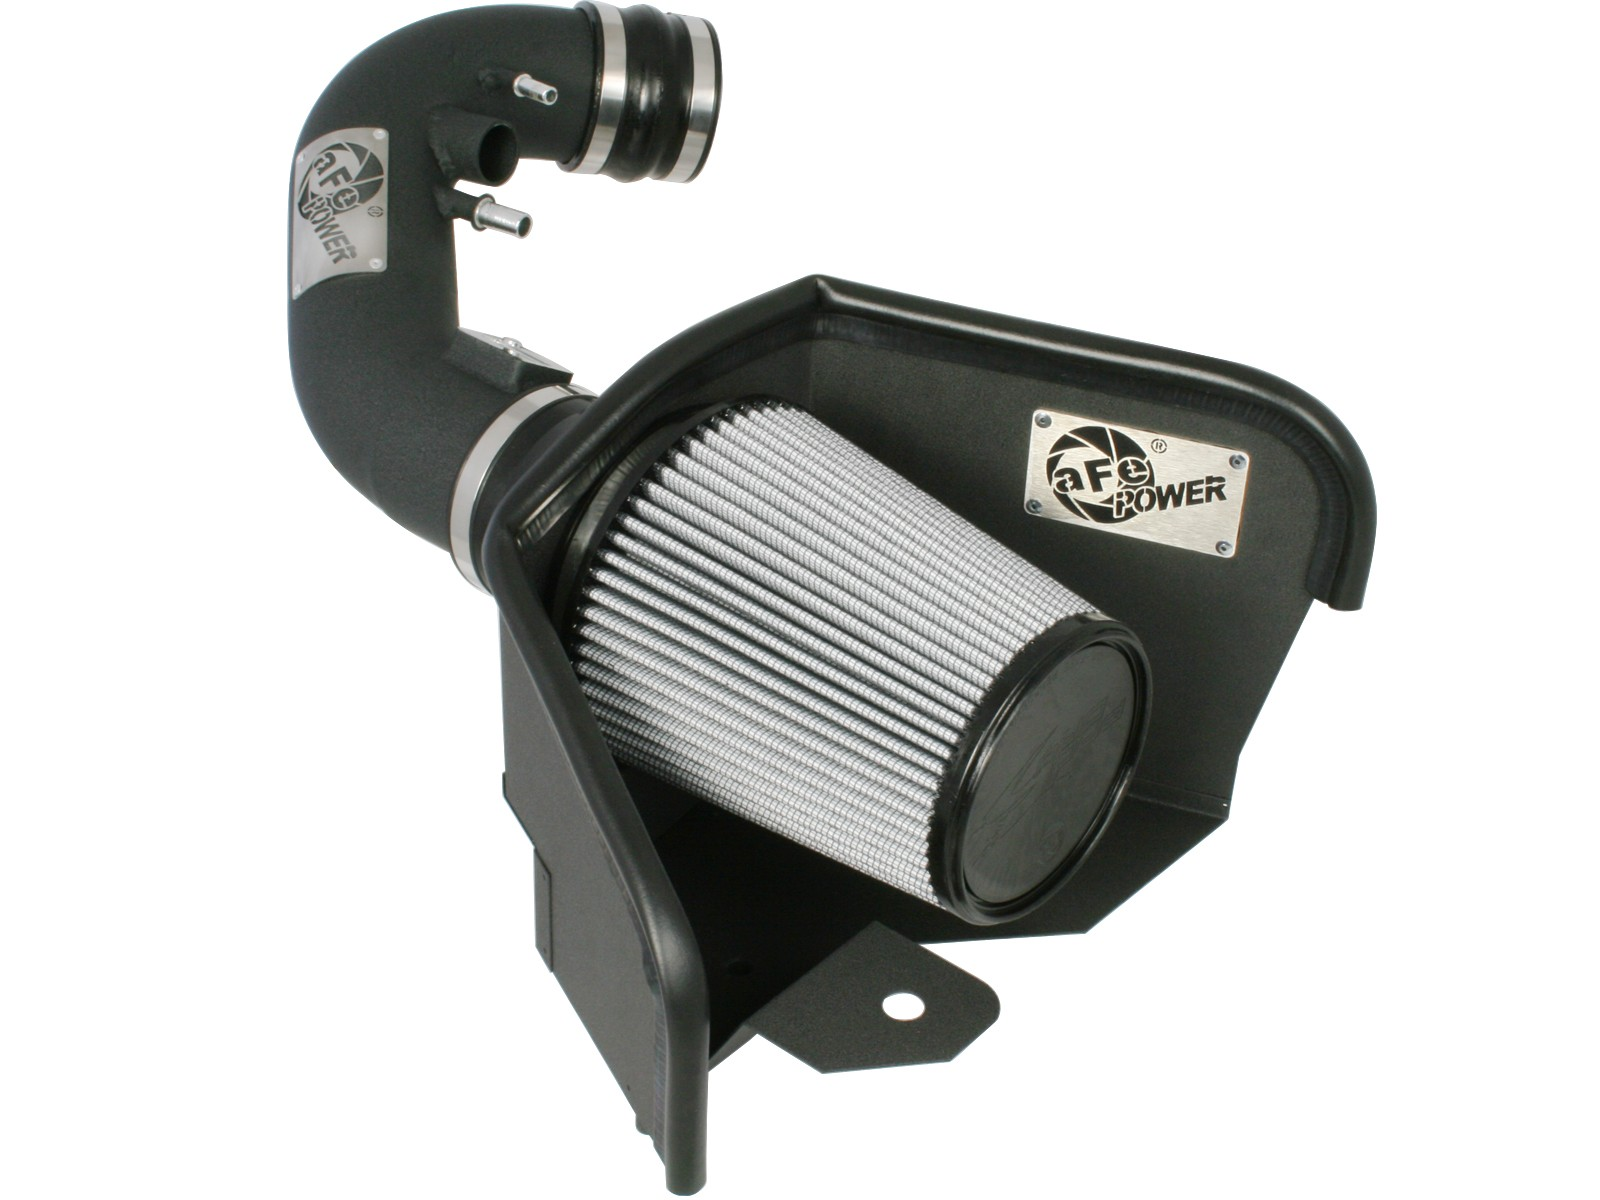 aFe POWER 51-11982-B Magnum FORCE Stage-2 Pro DRY S Cold Air Intake System